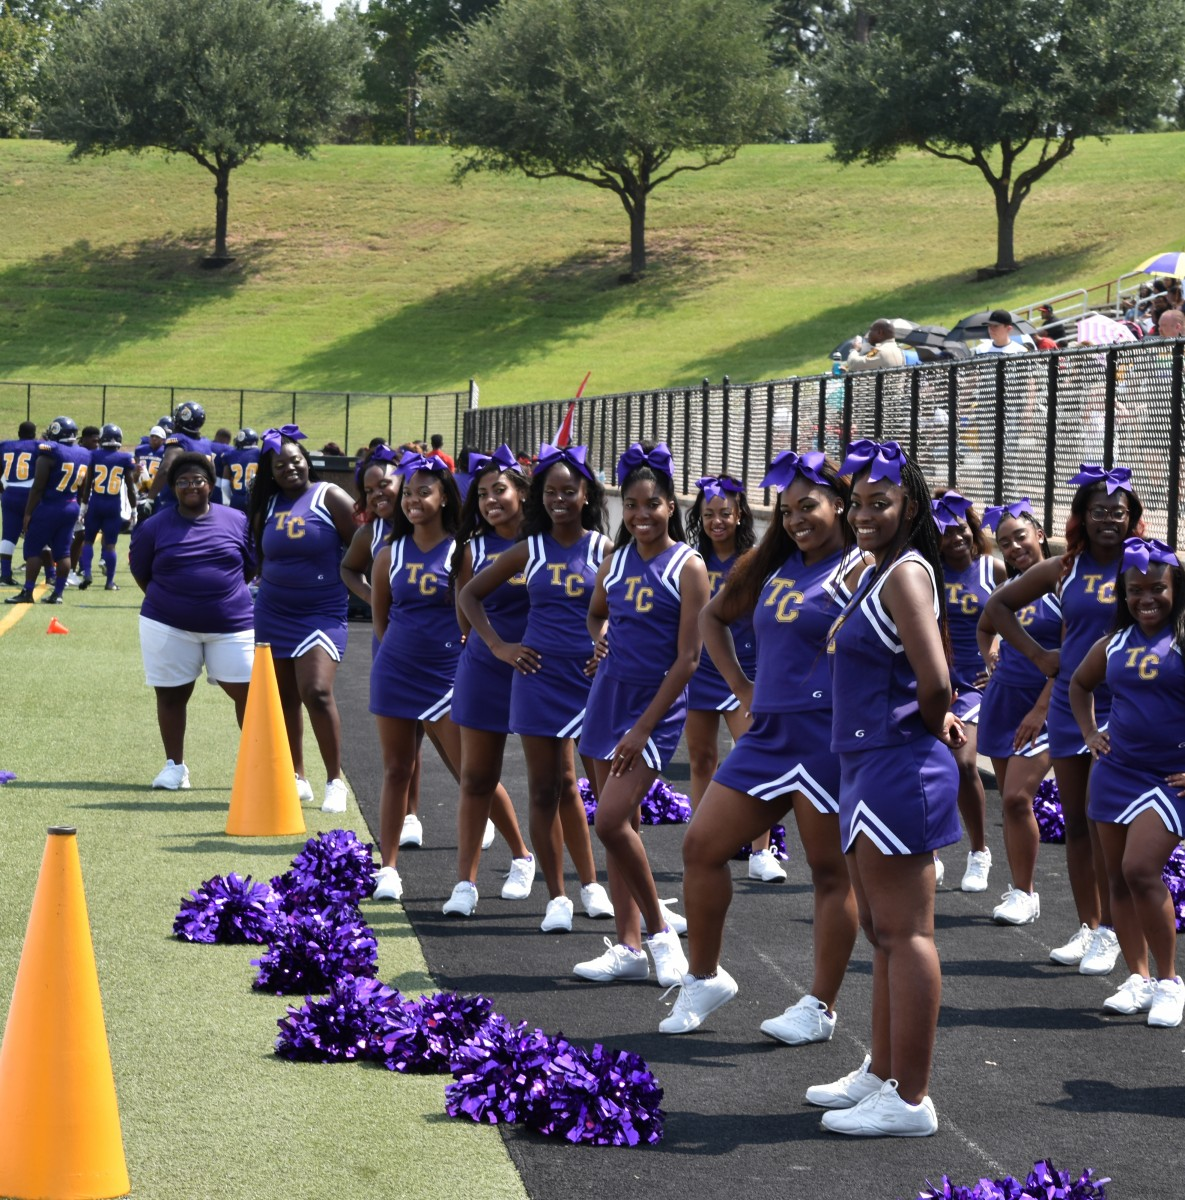 Texas College Cheerleaders in purple uniforms at a football game.